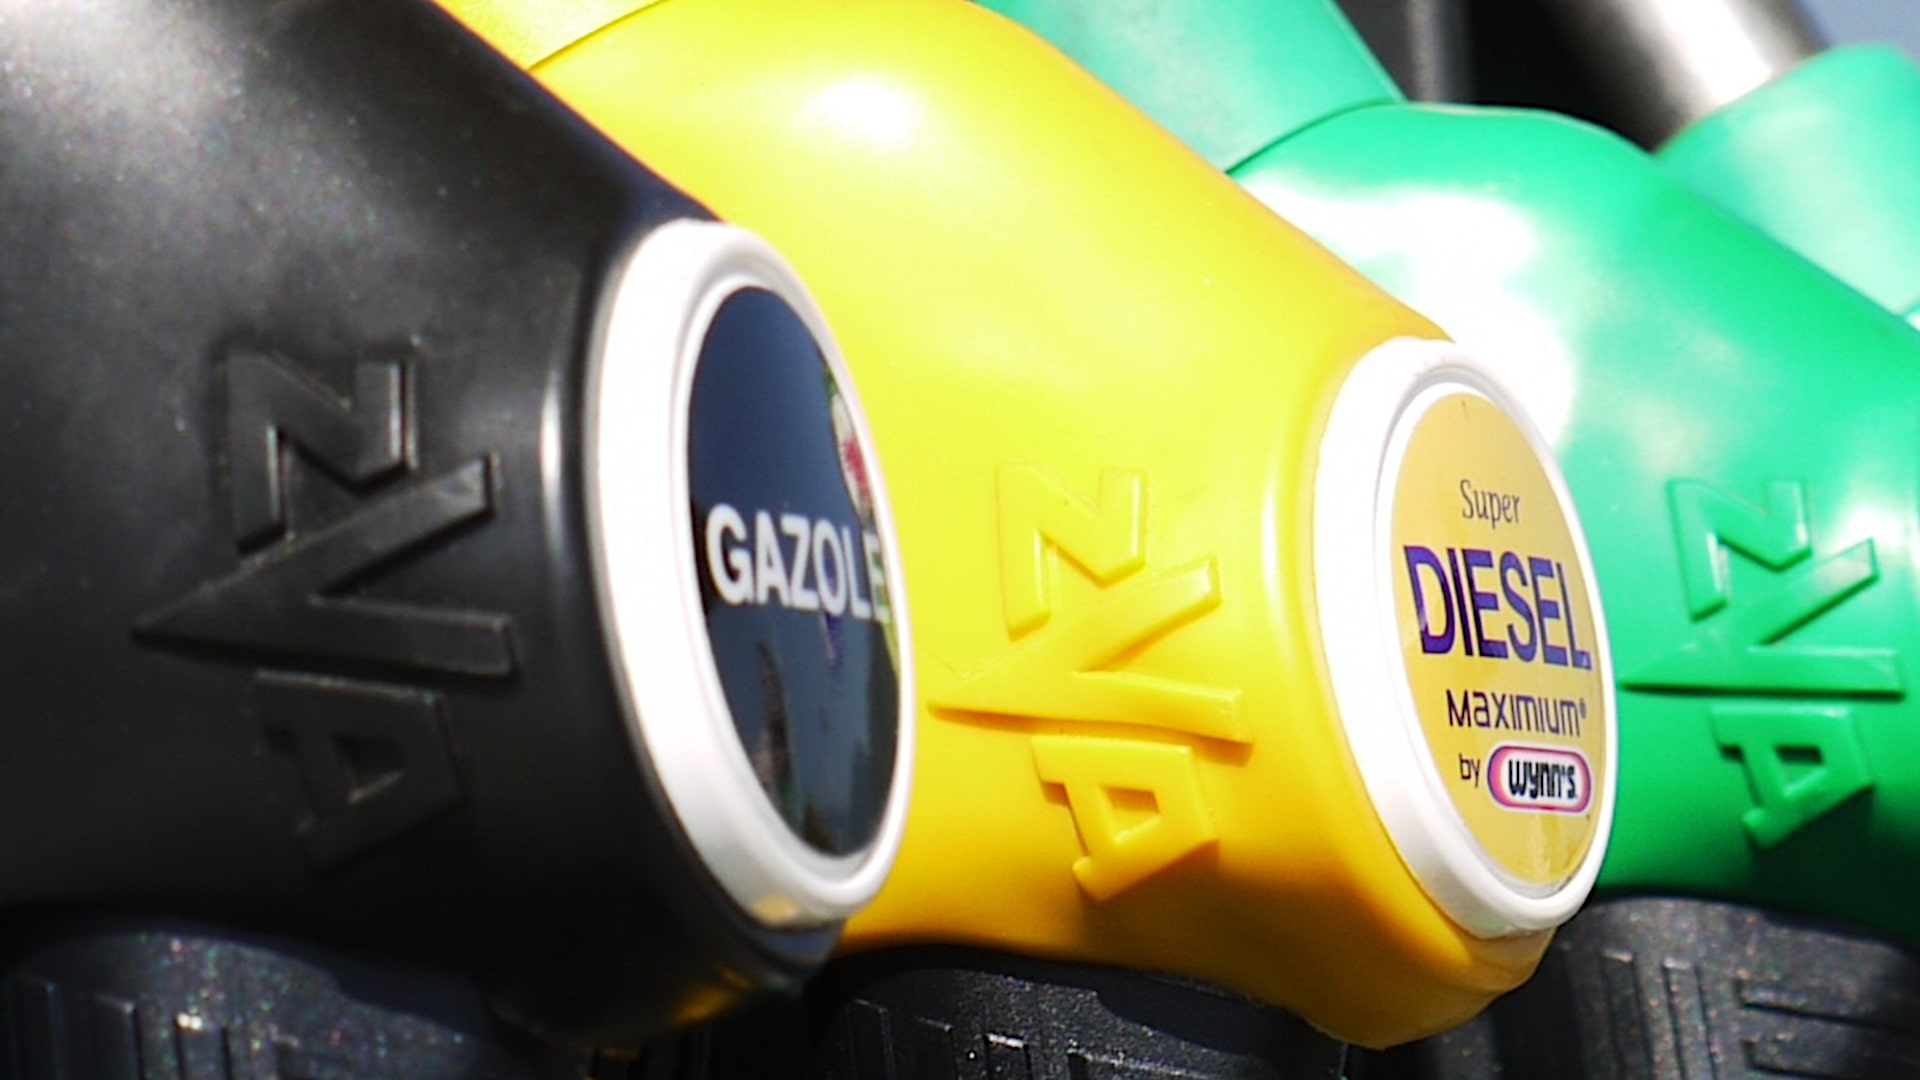 Diesel or Gasoline – The Eternal Dilemma When Buying a Car